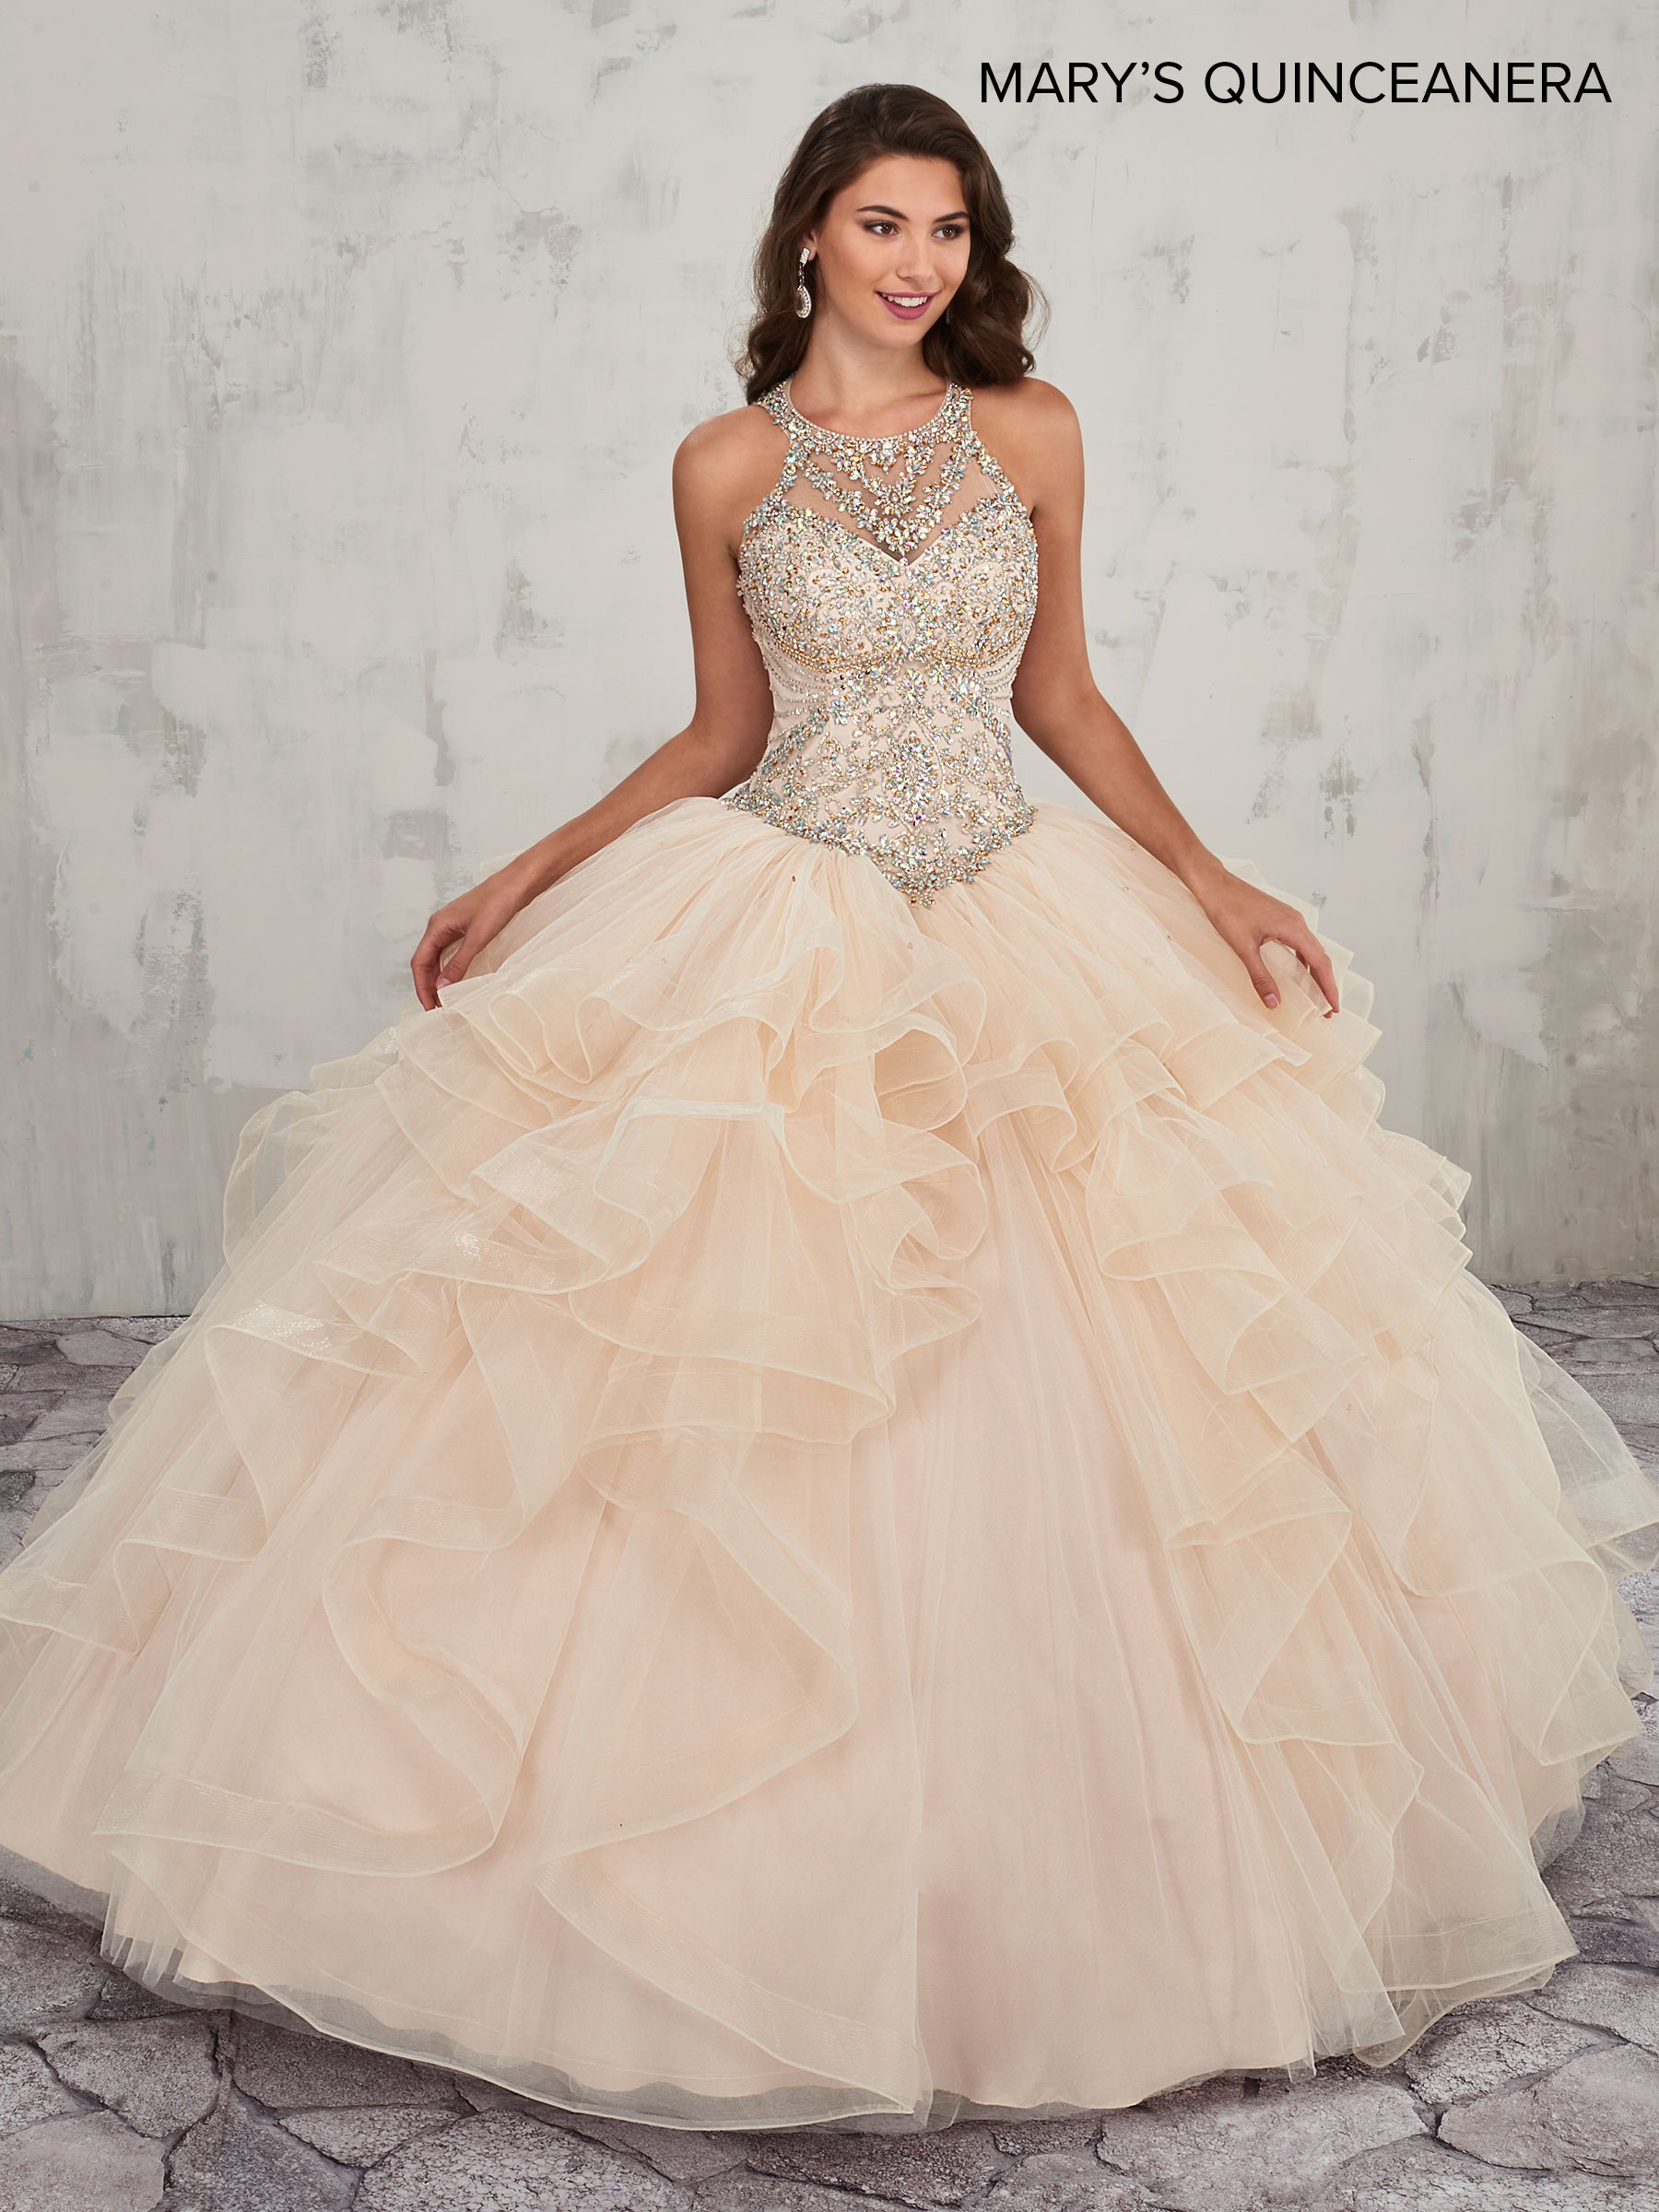 Ruffled Halter Quinceanera Dress By Mary S Bridal Mq2011 In 2021 Pretty Quinceanera Dresses Quincenera Dresses Quince Dresses [ 2400 x 1800 Pixel ]